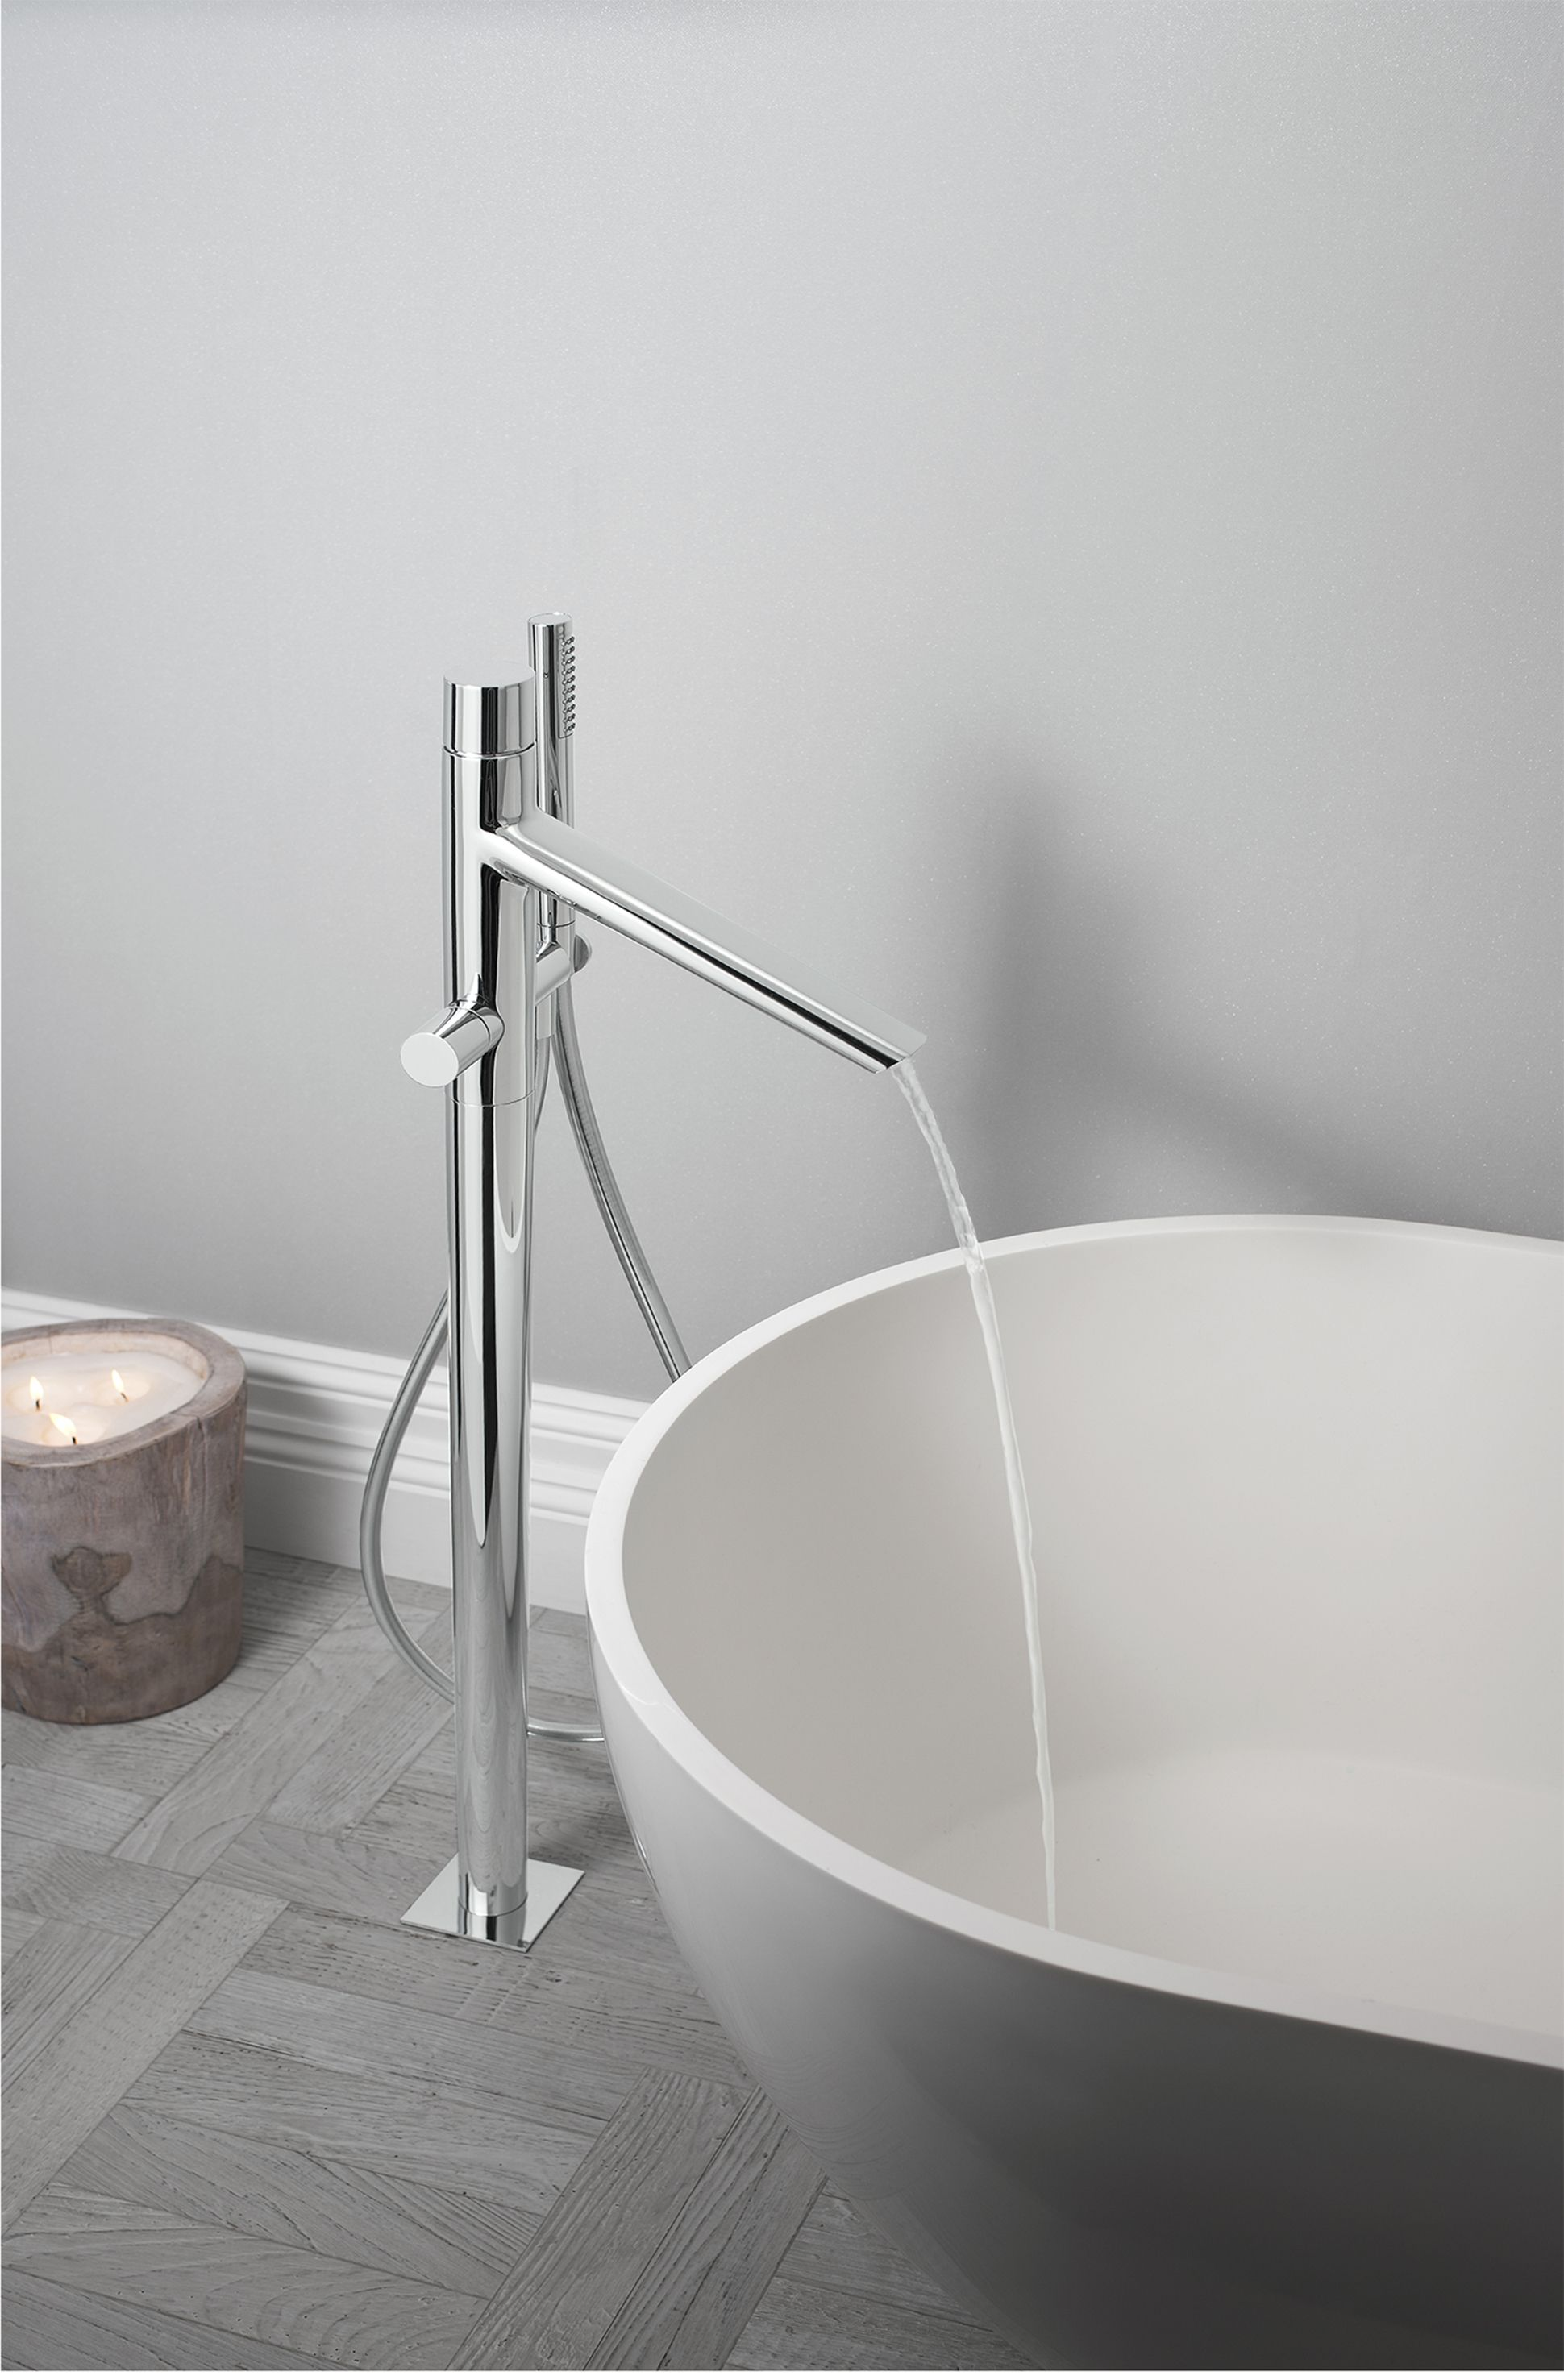 mount of famous floor faucet freestanding elegant bathtub filler tub ideas for mounted hansgrohe